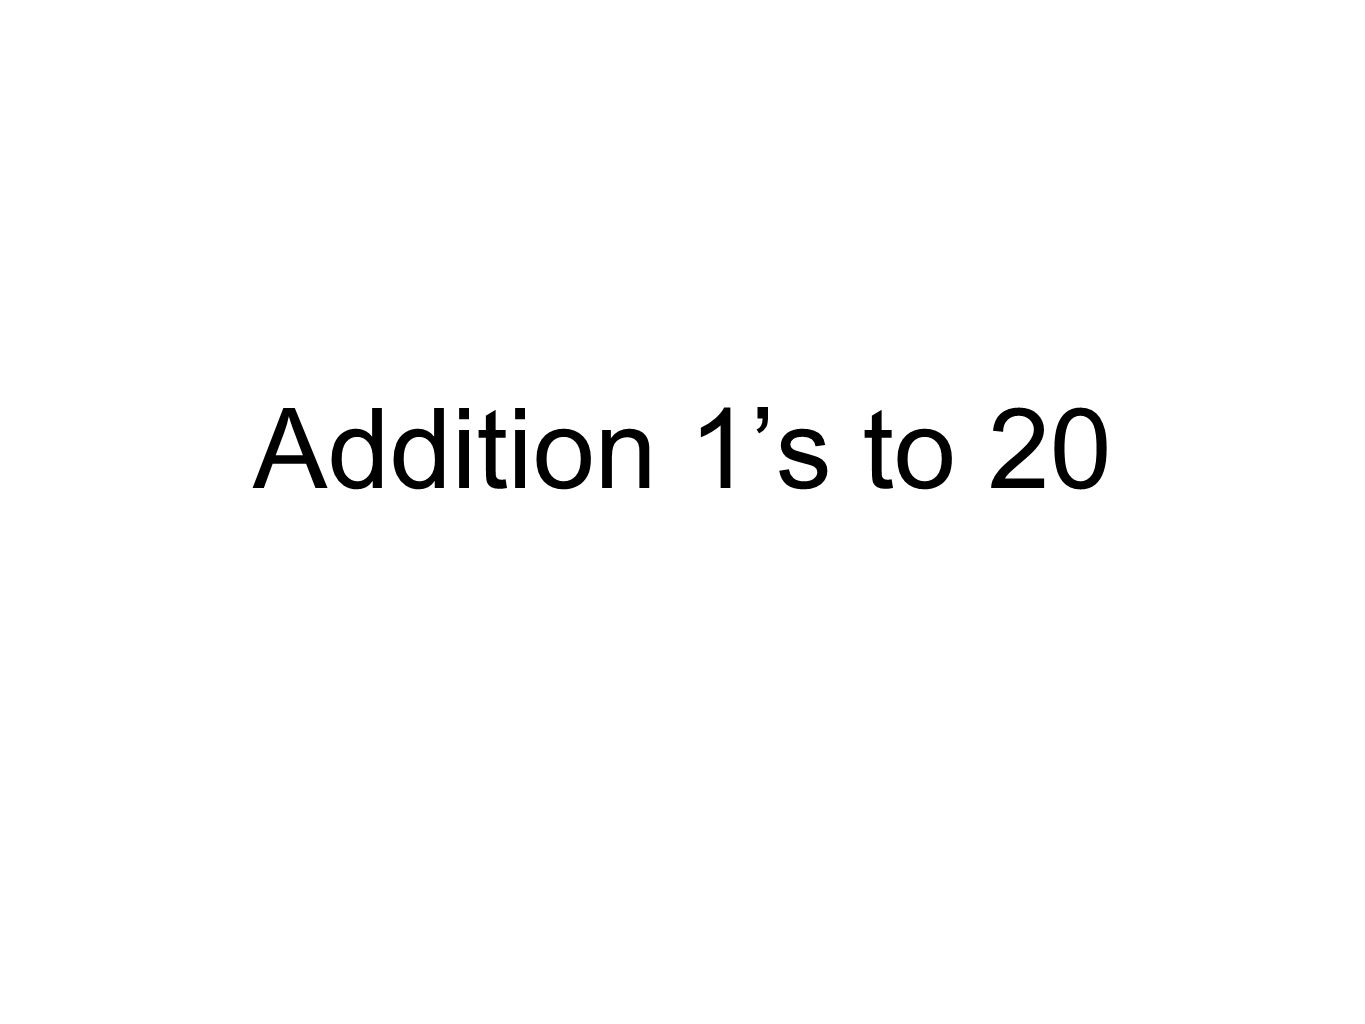 Addition 9's to 20